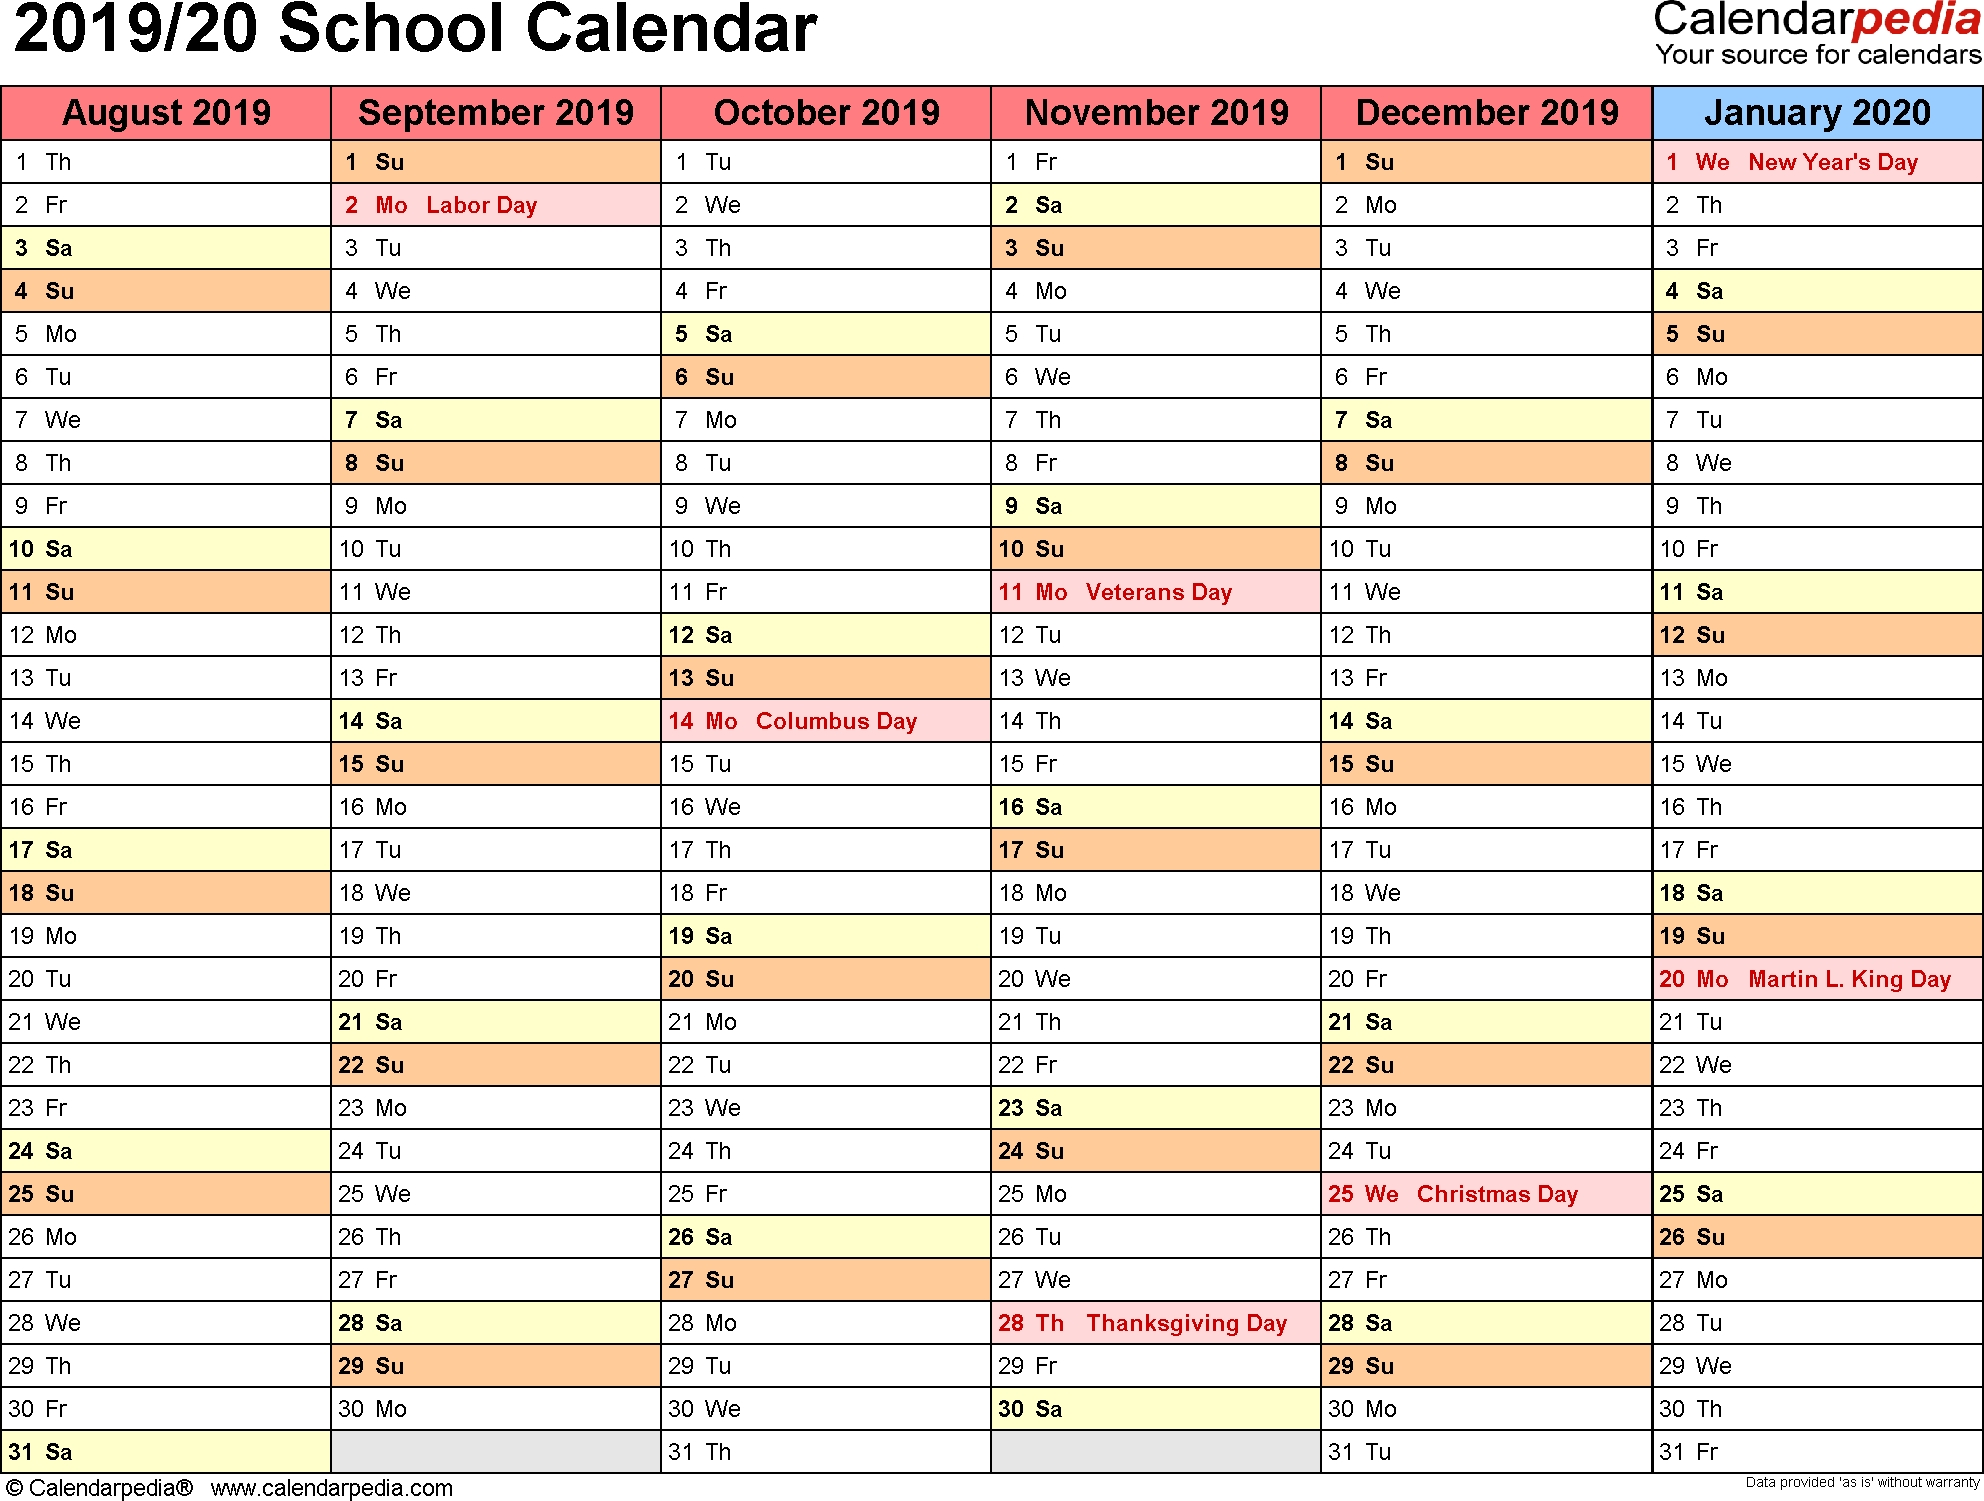 School Calendars 2019/2020 As Free Printable Word Templates intended for Homework Calendar 2019-2020